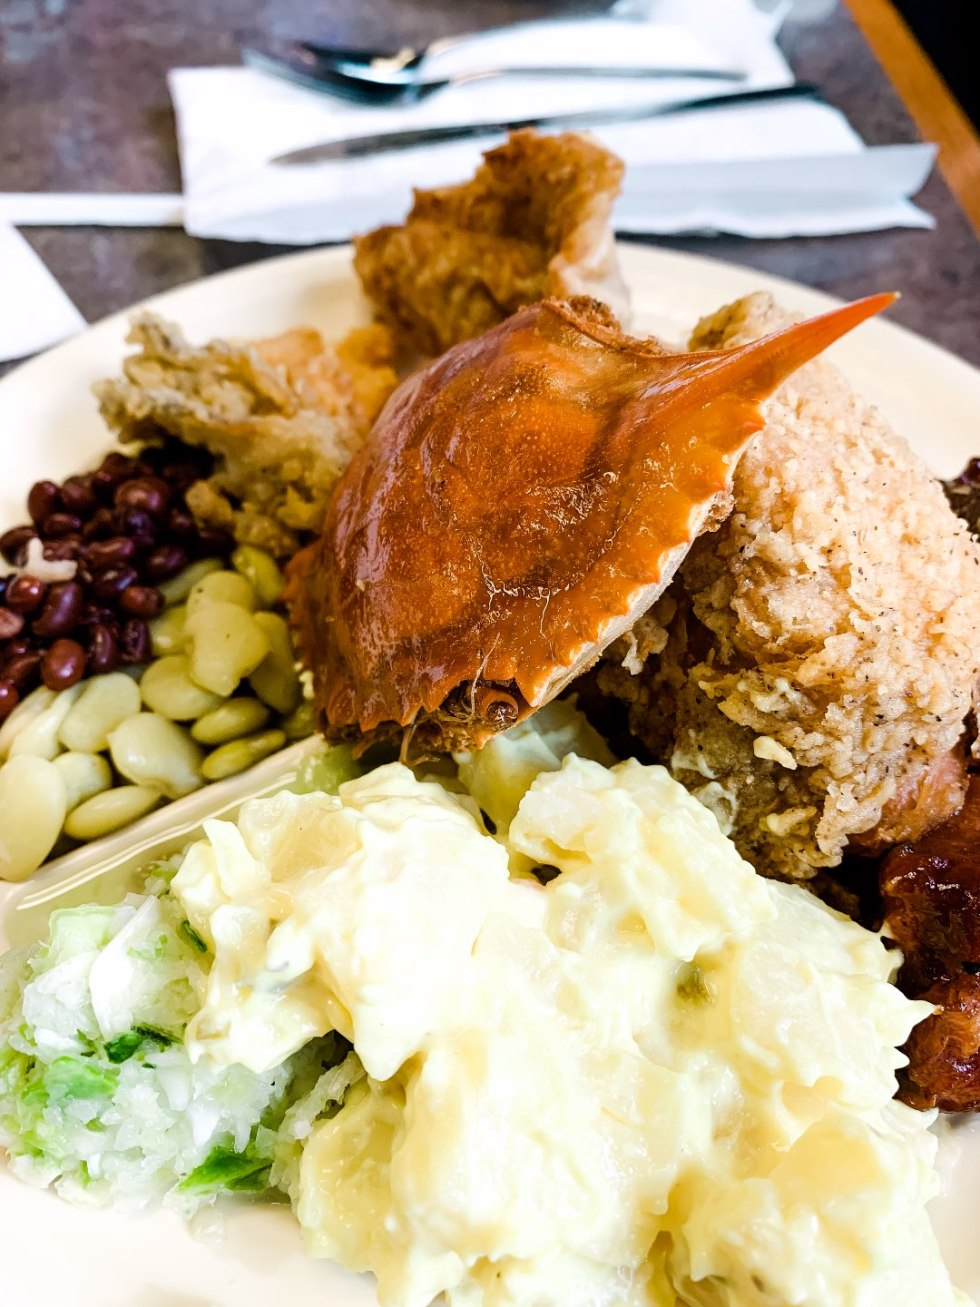 Eastern North Carolina Travel Guide: Top 10 Things to Do in Goldsboro NC by popular North Carolina blog, I'm Fixin' To: image of food at McCall's BBQ and Seafood.